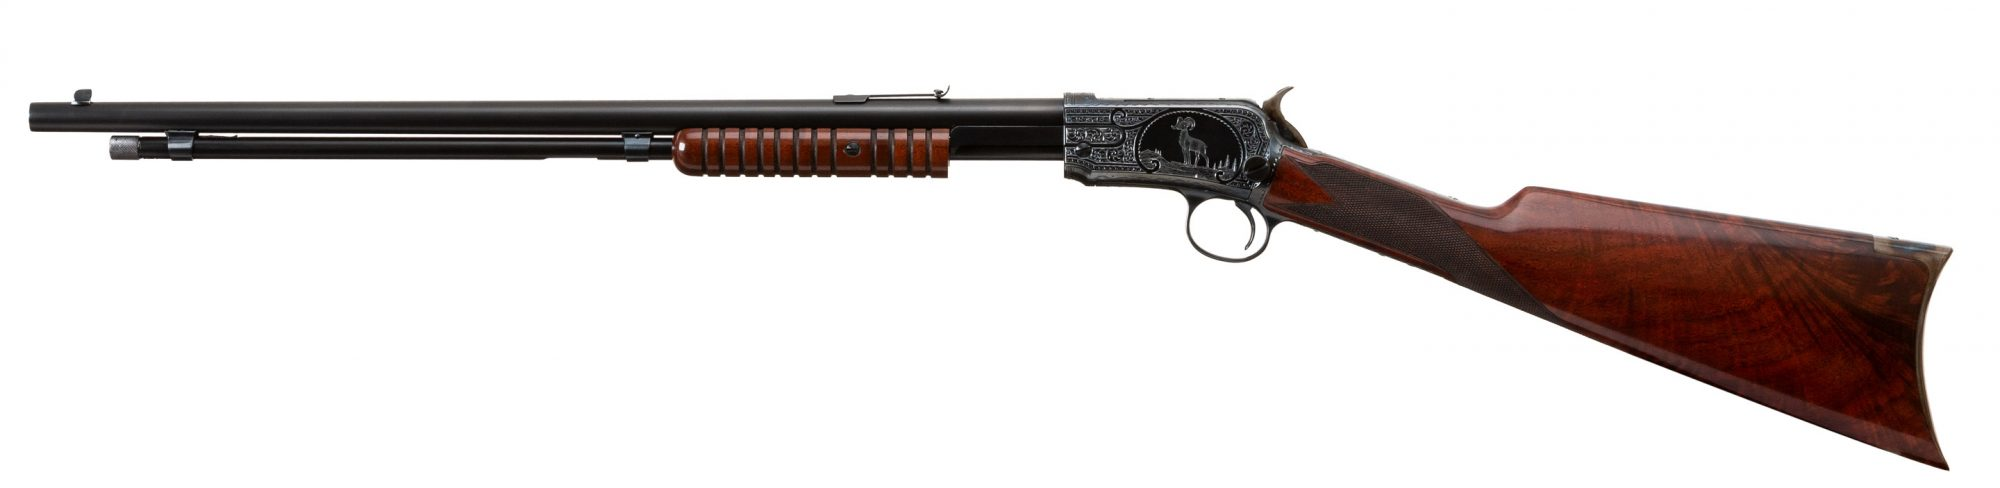 Photo of a restored and upgraded Winchester Model 1906, by Turnbull Restoration of Bloomfield, NY